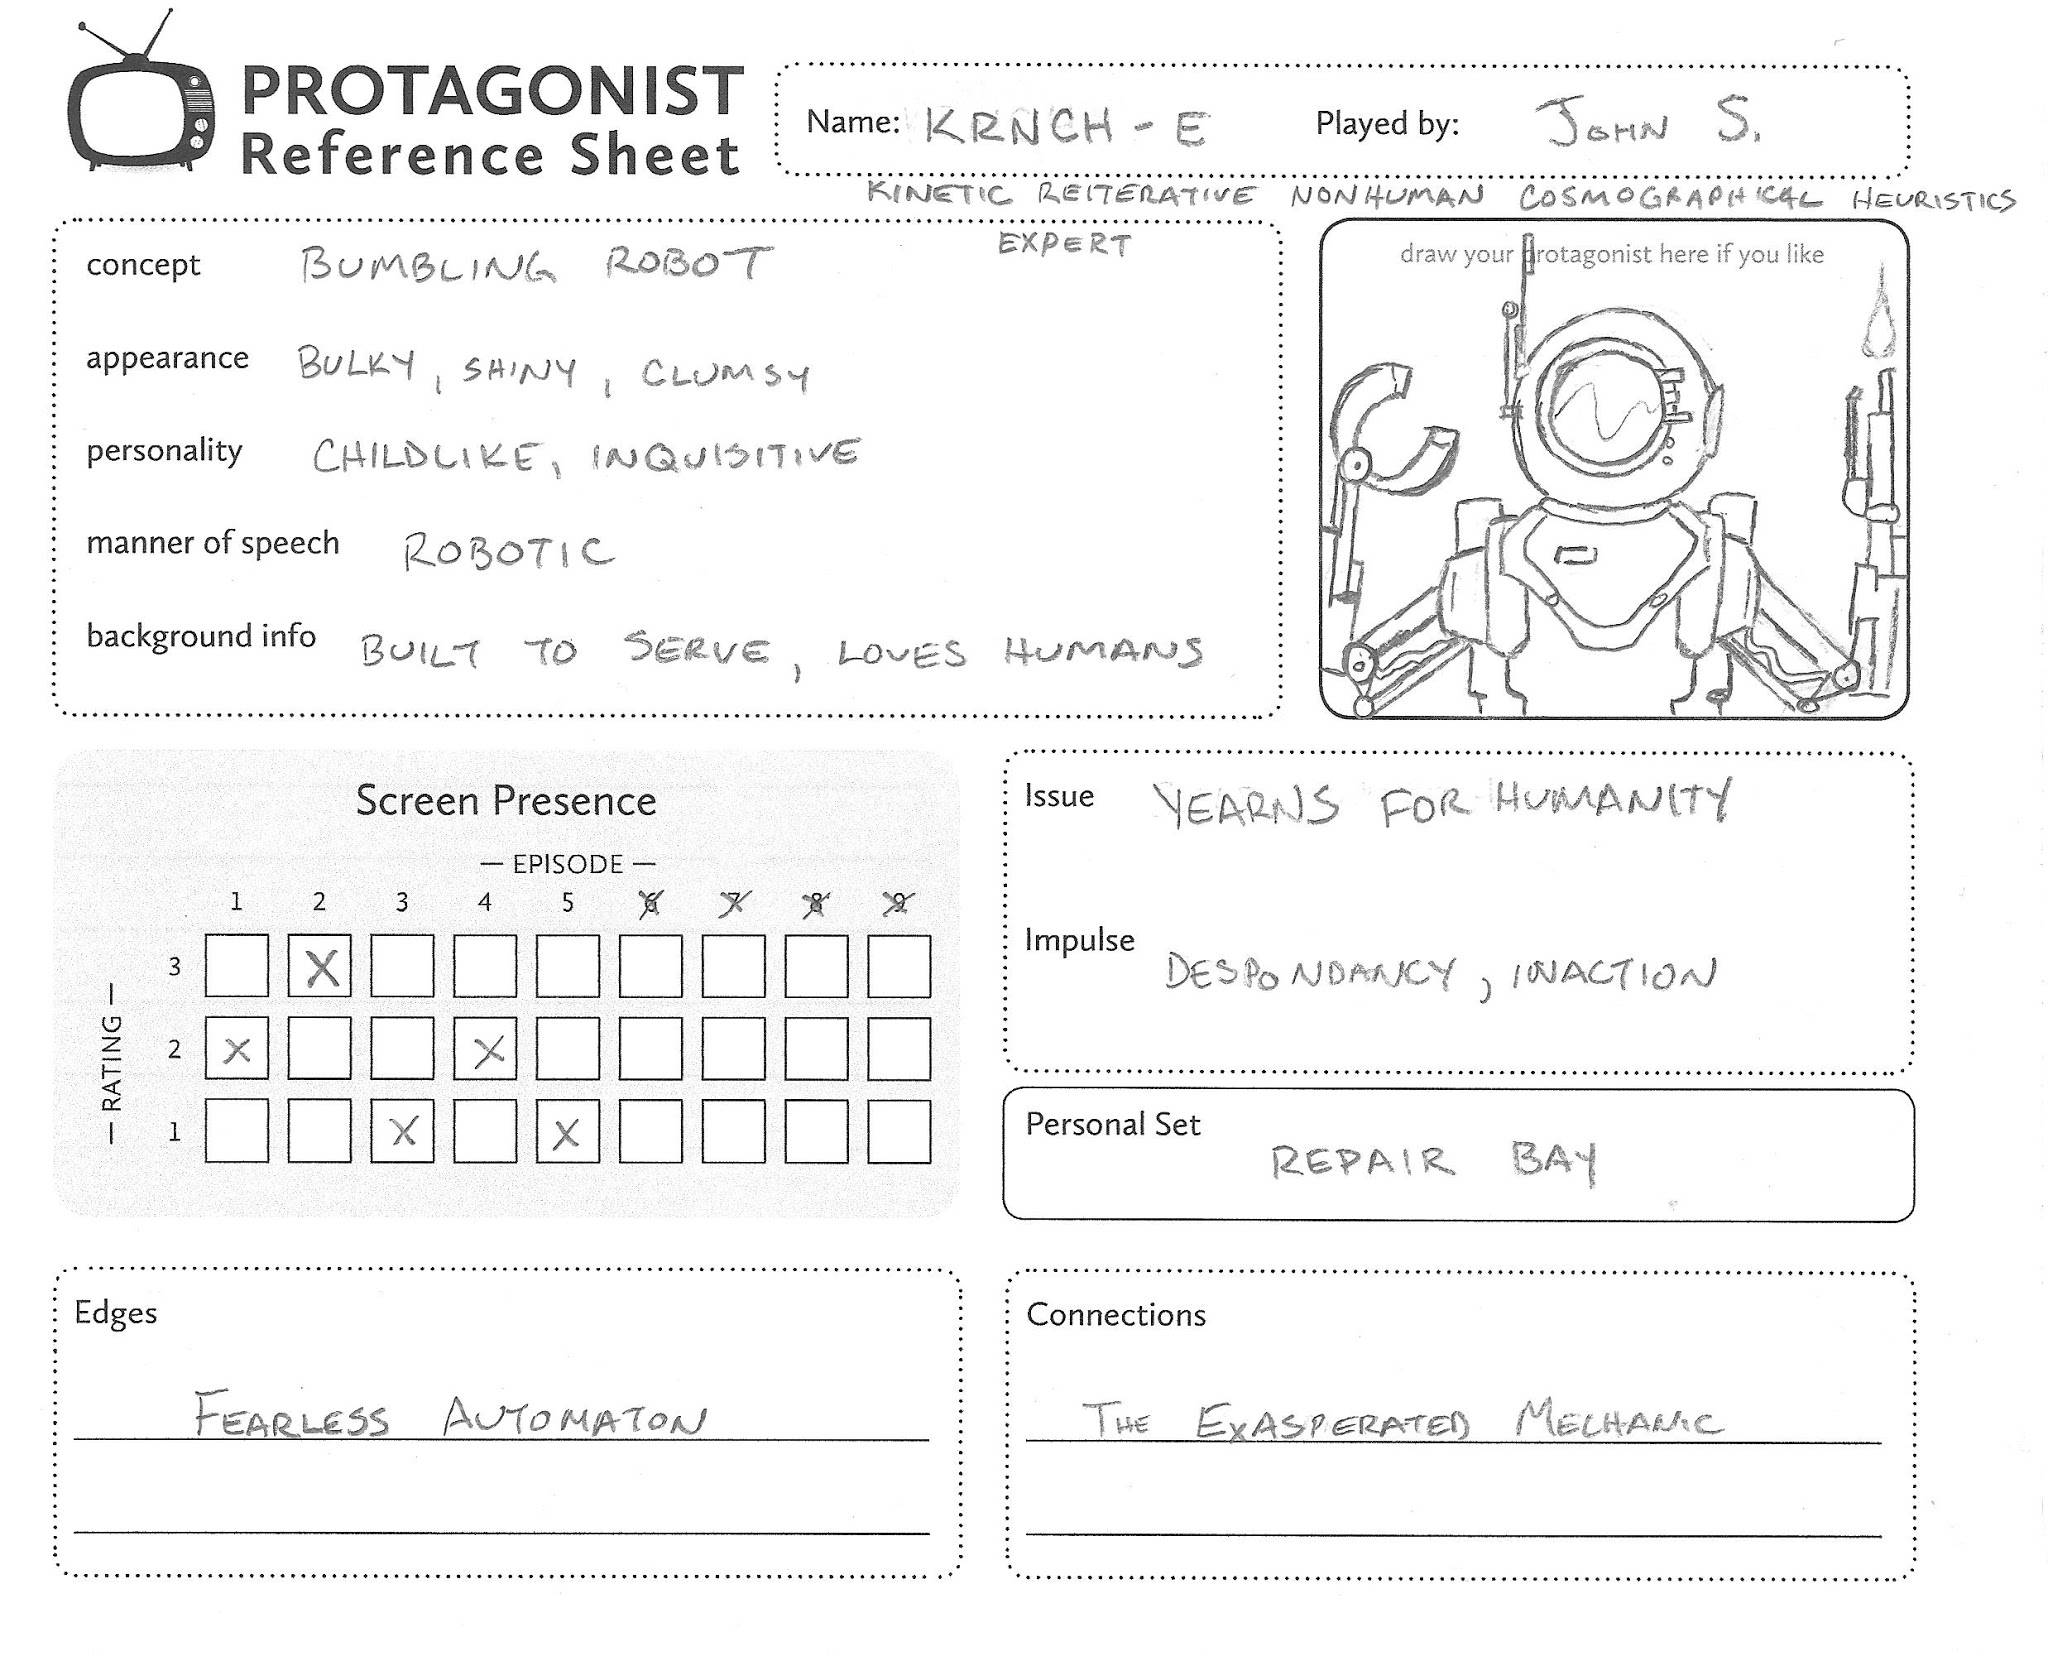 KRNCH-E's primetime adventures character sheet